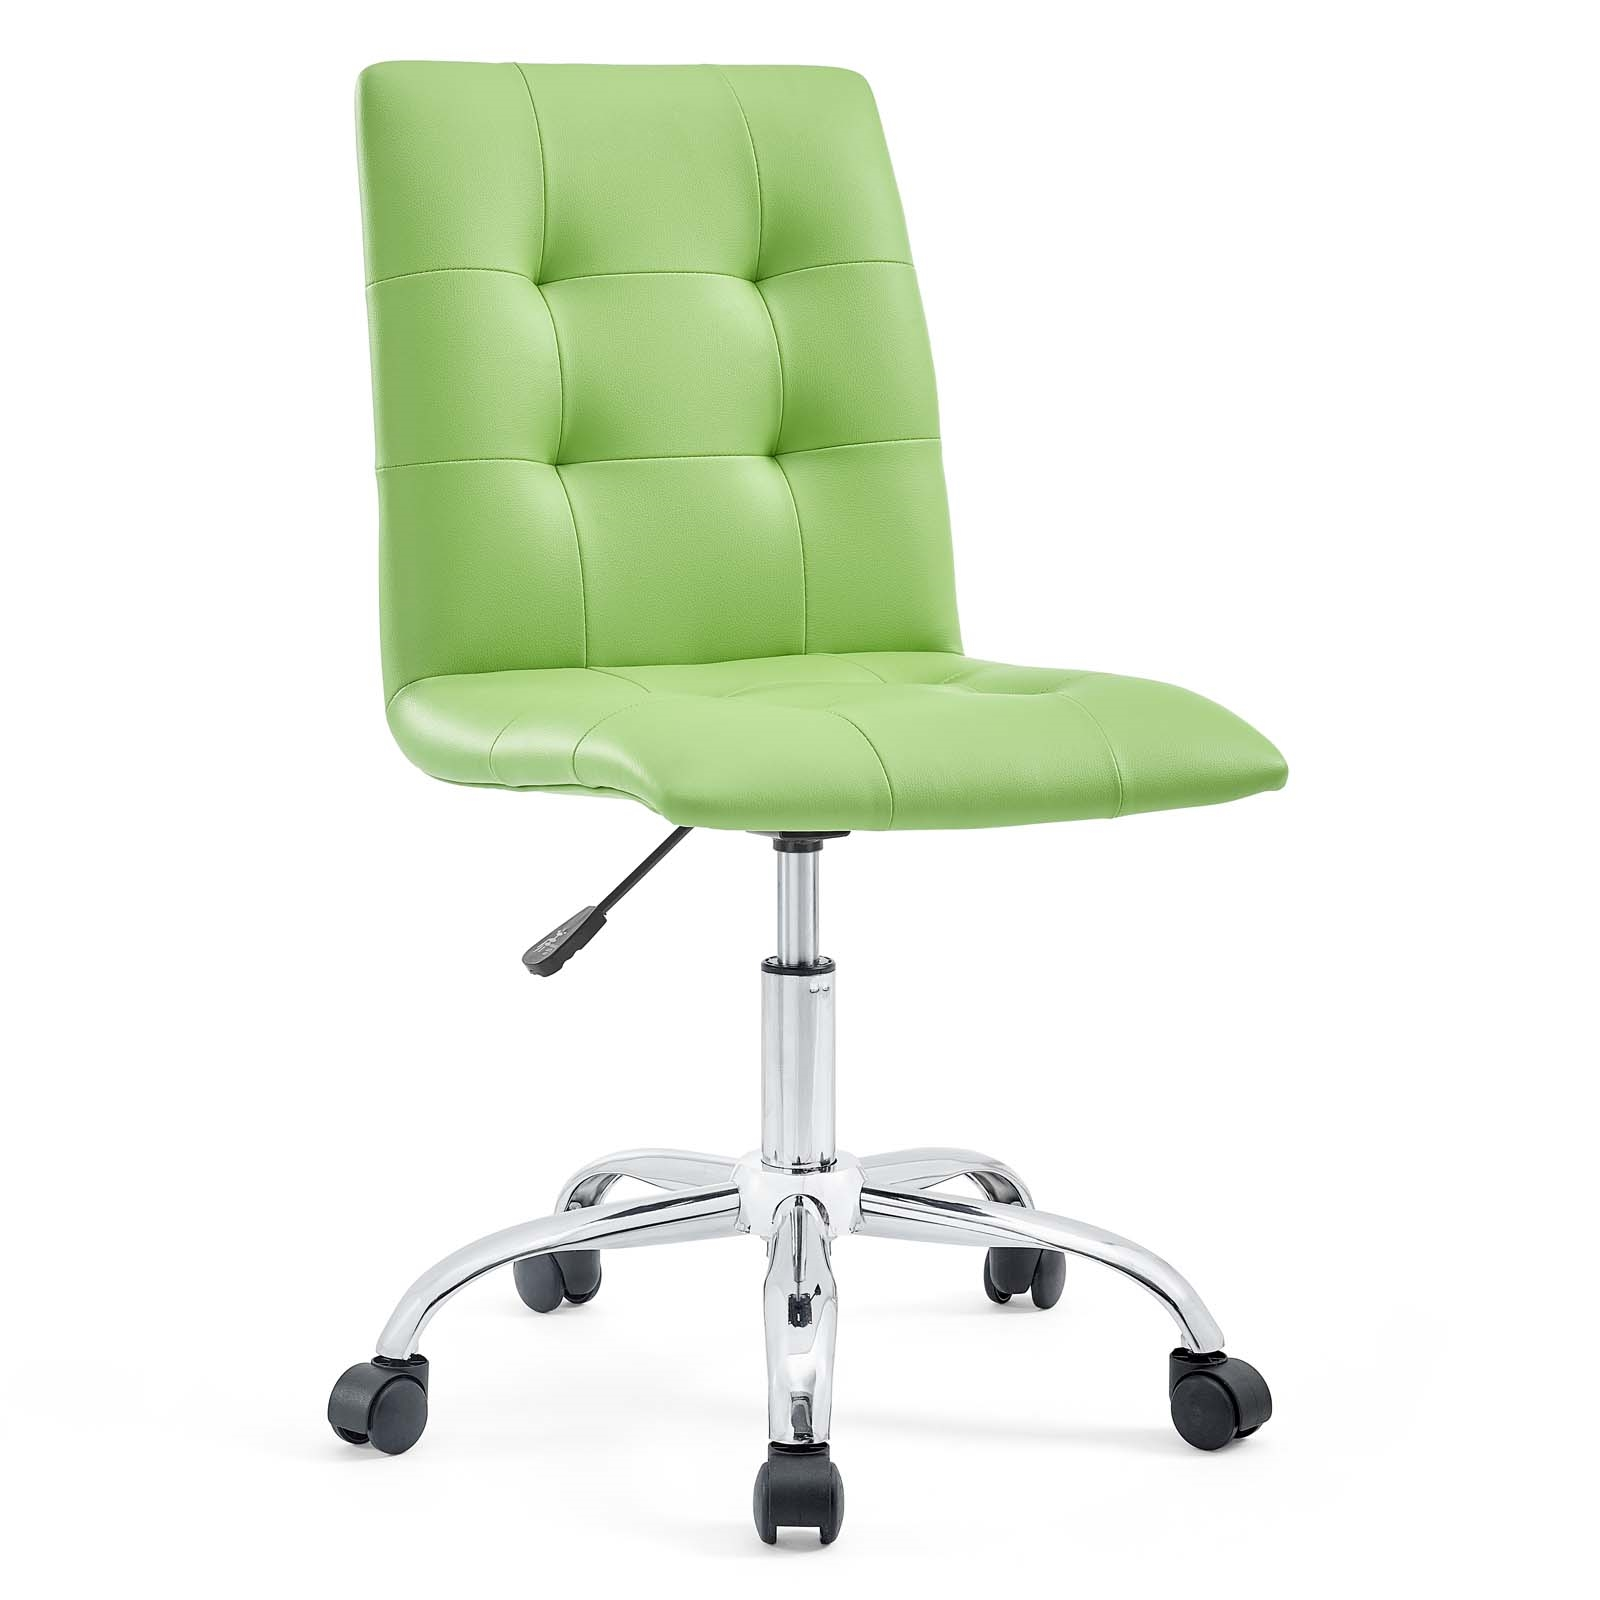 Armless Mid Back Office Chair in Bright Green